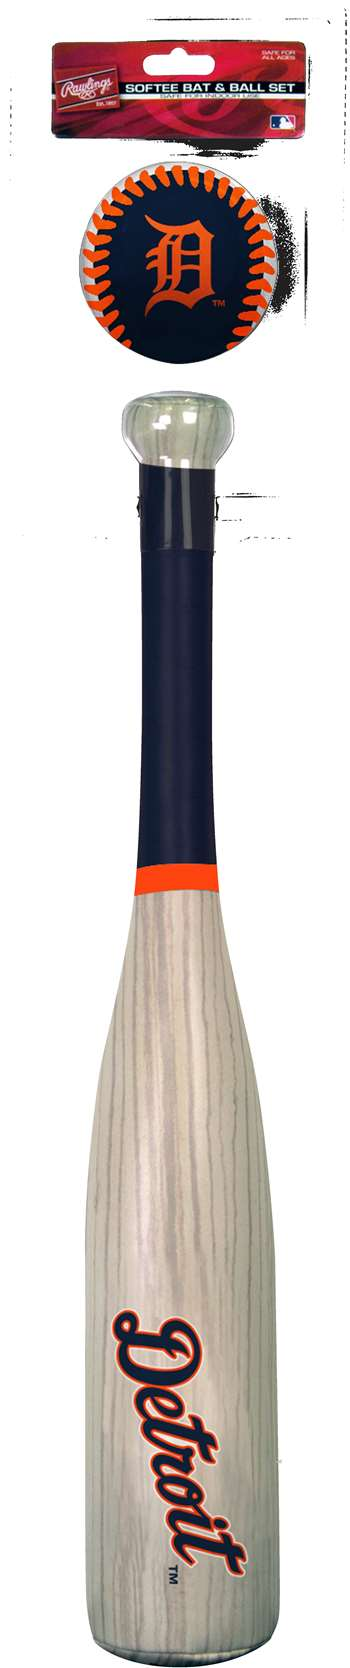 MLB Detroit Tigers Grand Slam Softee Bat and Ball Set (Wood Grain)